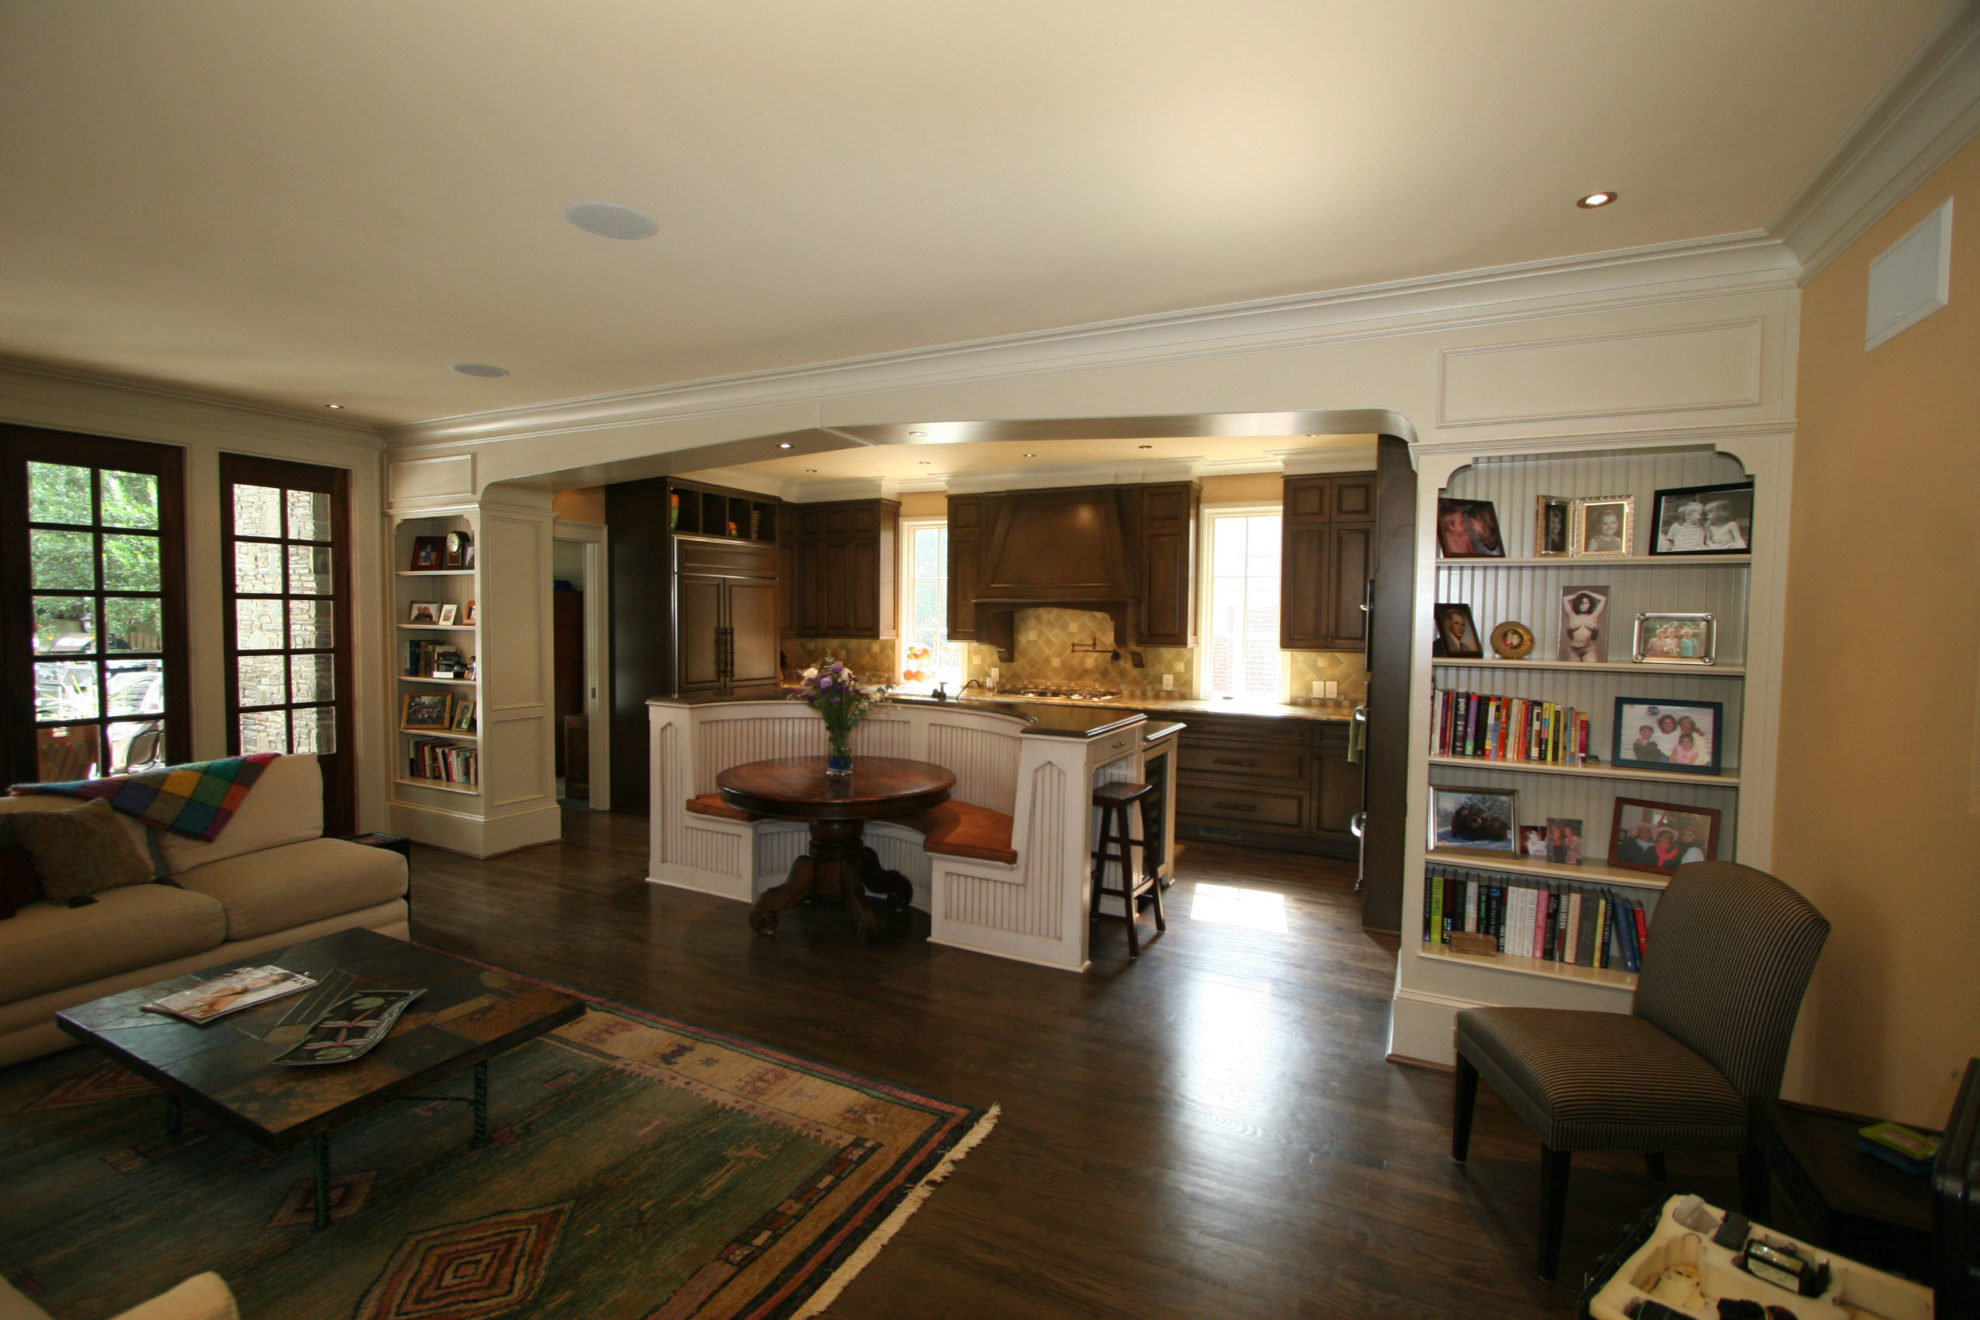 https://creativecabinetryinc.com/wp-content/uploads/2019/01/c-Living-room-bookcase-long-archway.-e1548865664252.jpg